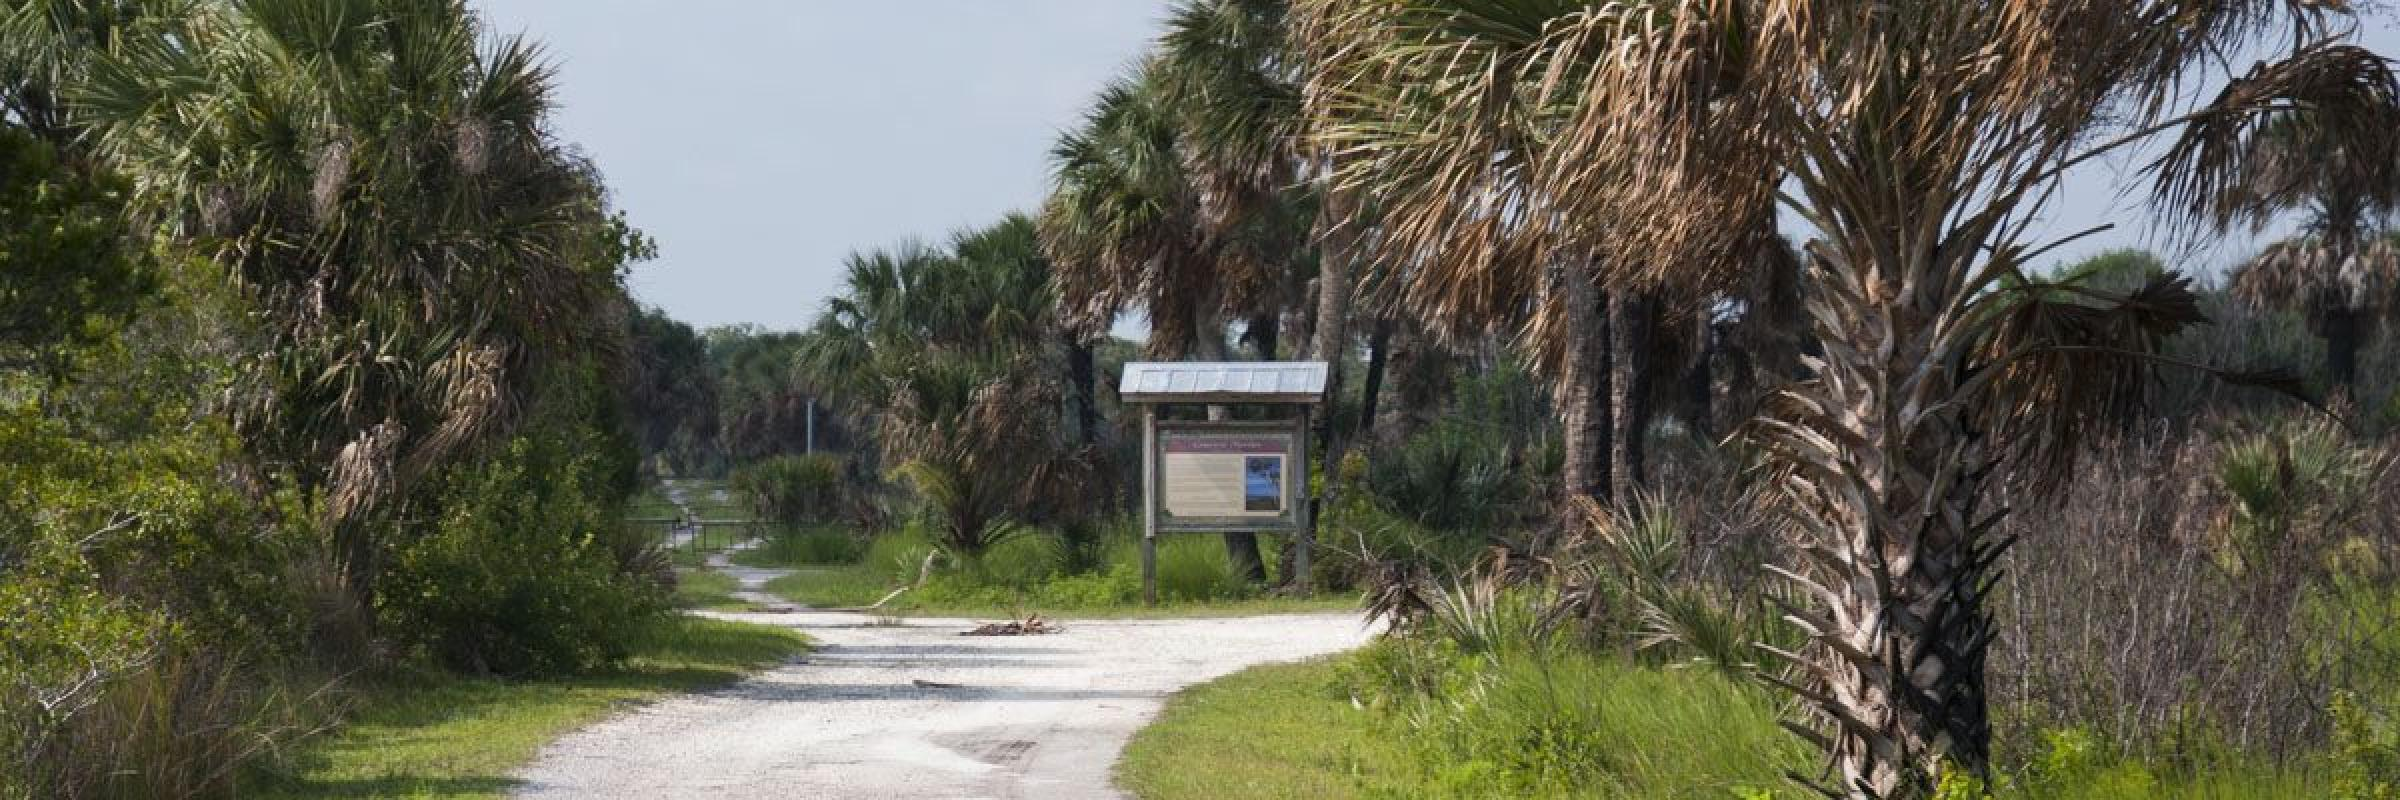 Canaveral Marshes Conservation Trailhead